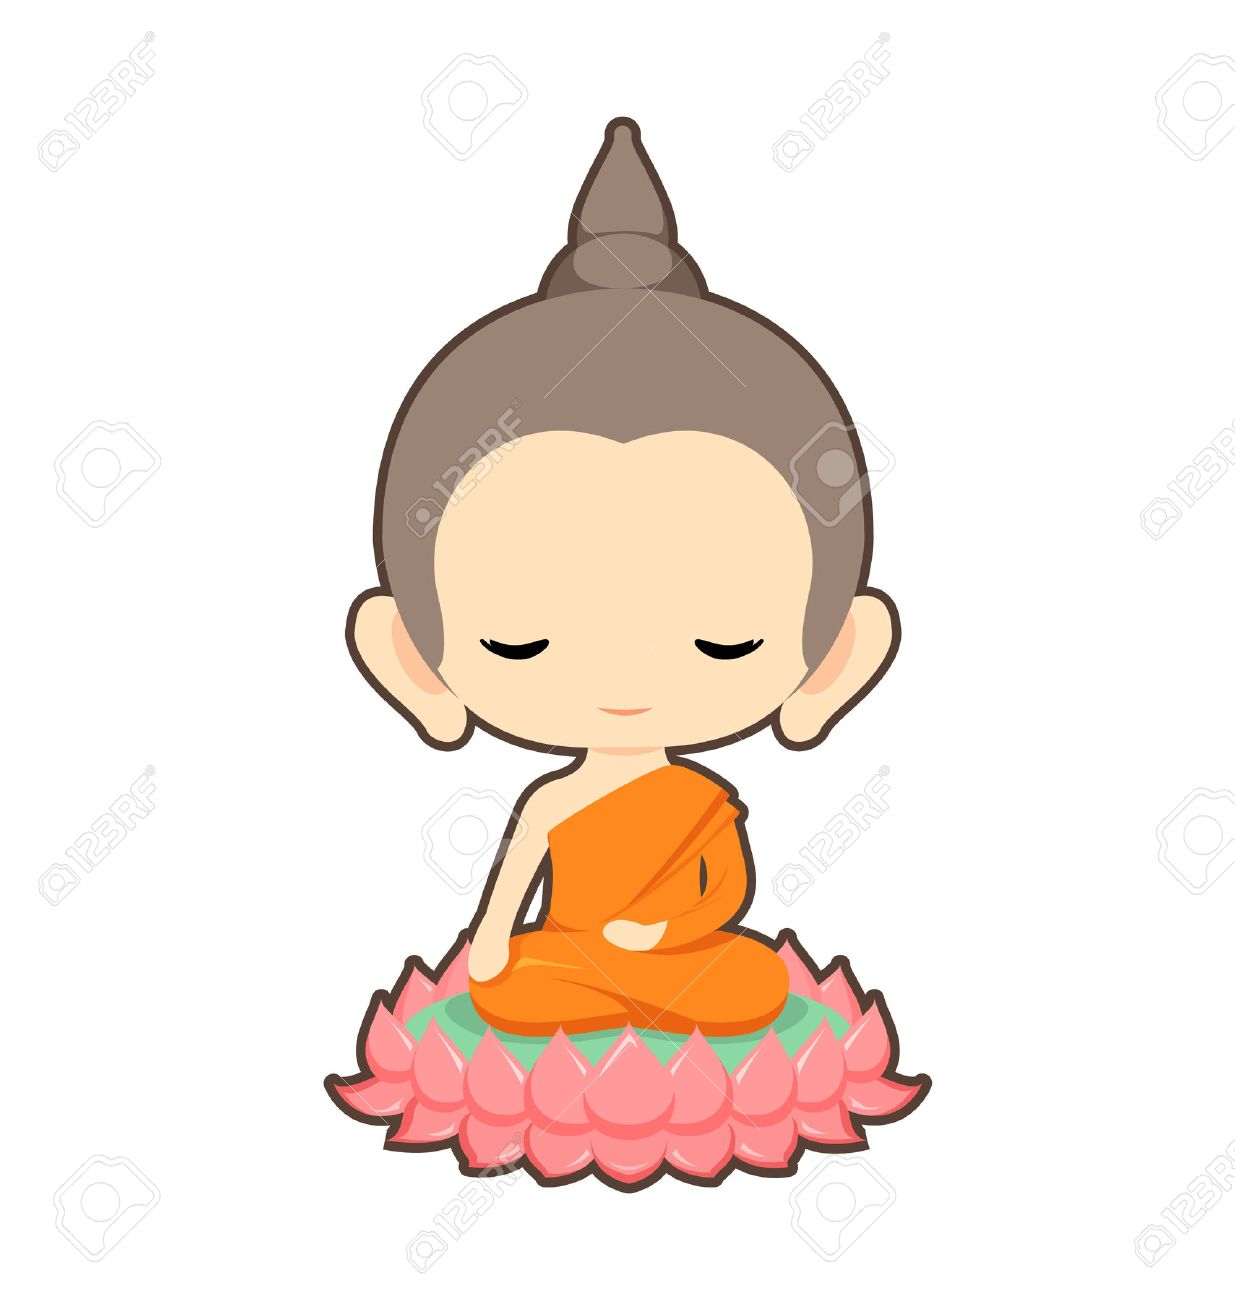 196 Budha Stock Vector Illustration And Royalty Free Budha Clipart